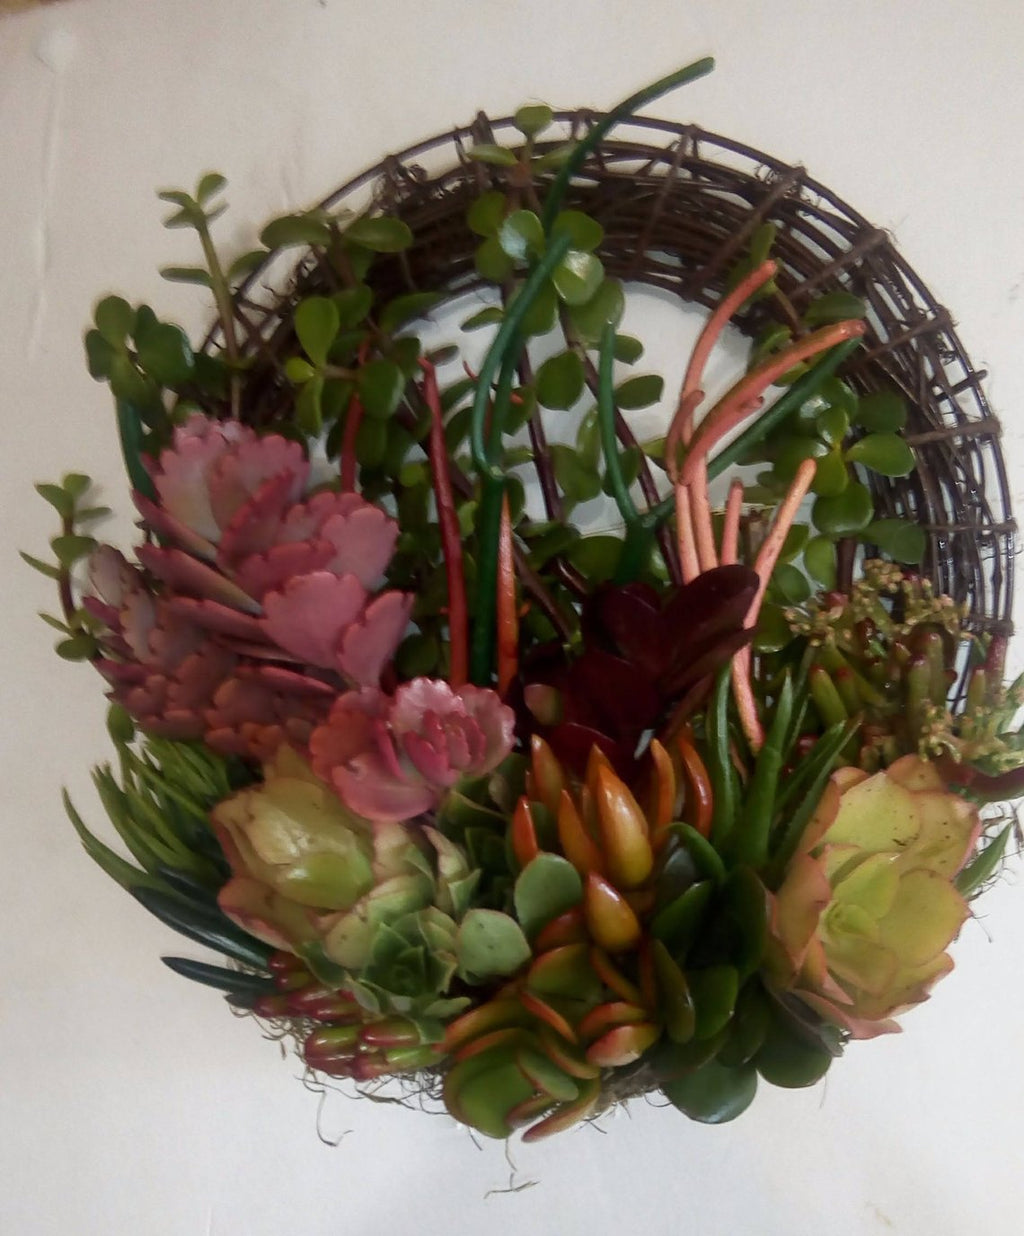 SPECIAL 16 inch willow branches living wreath of growing succulent plants